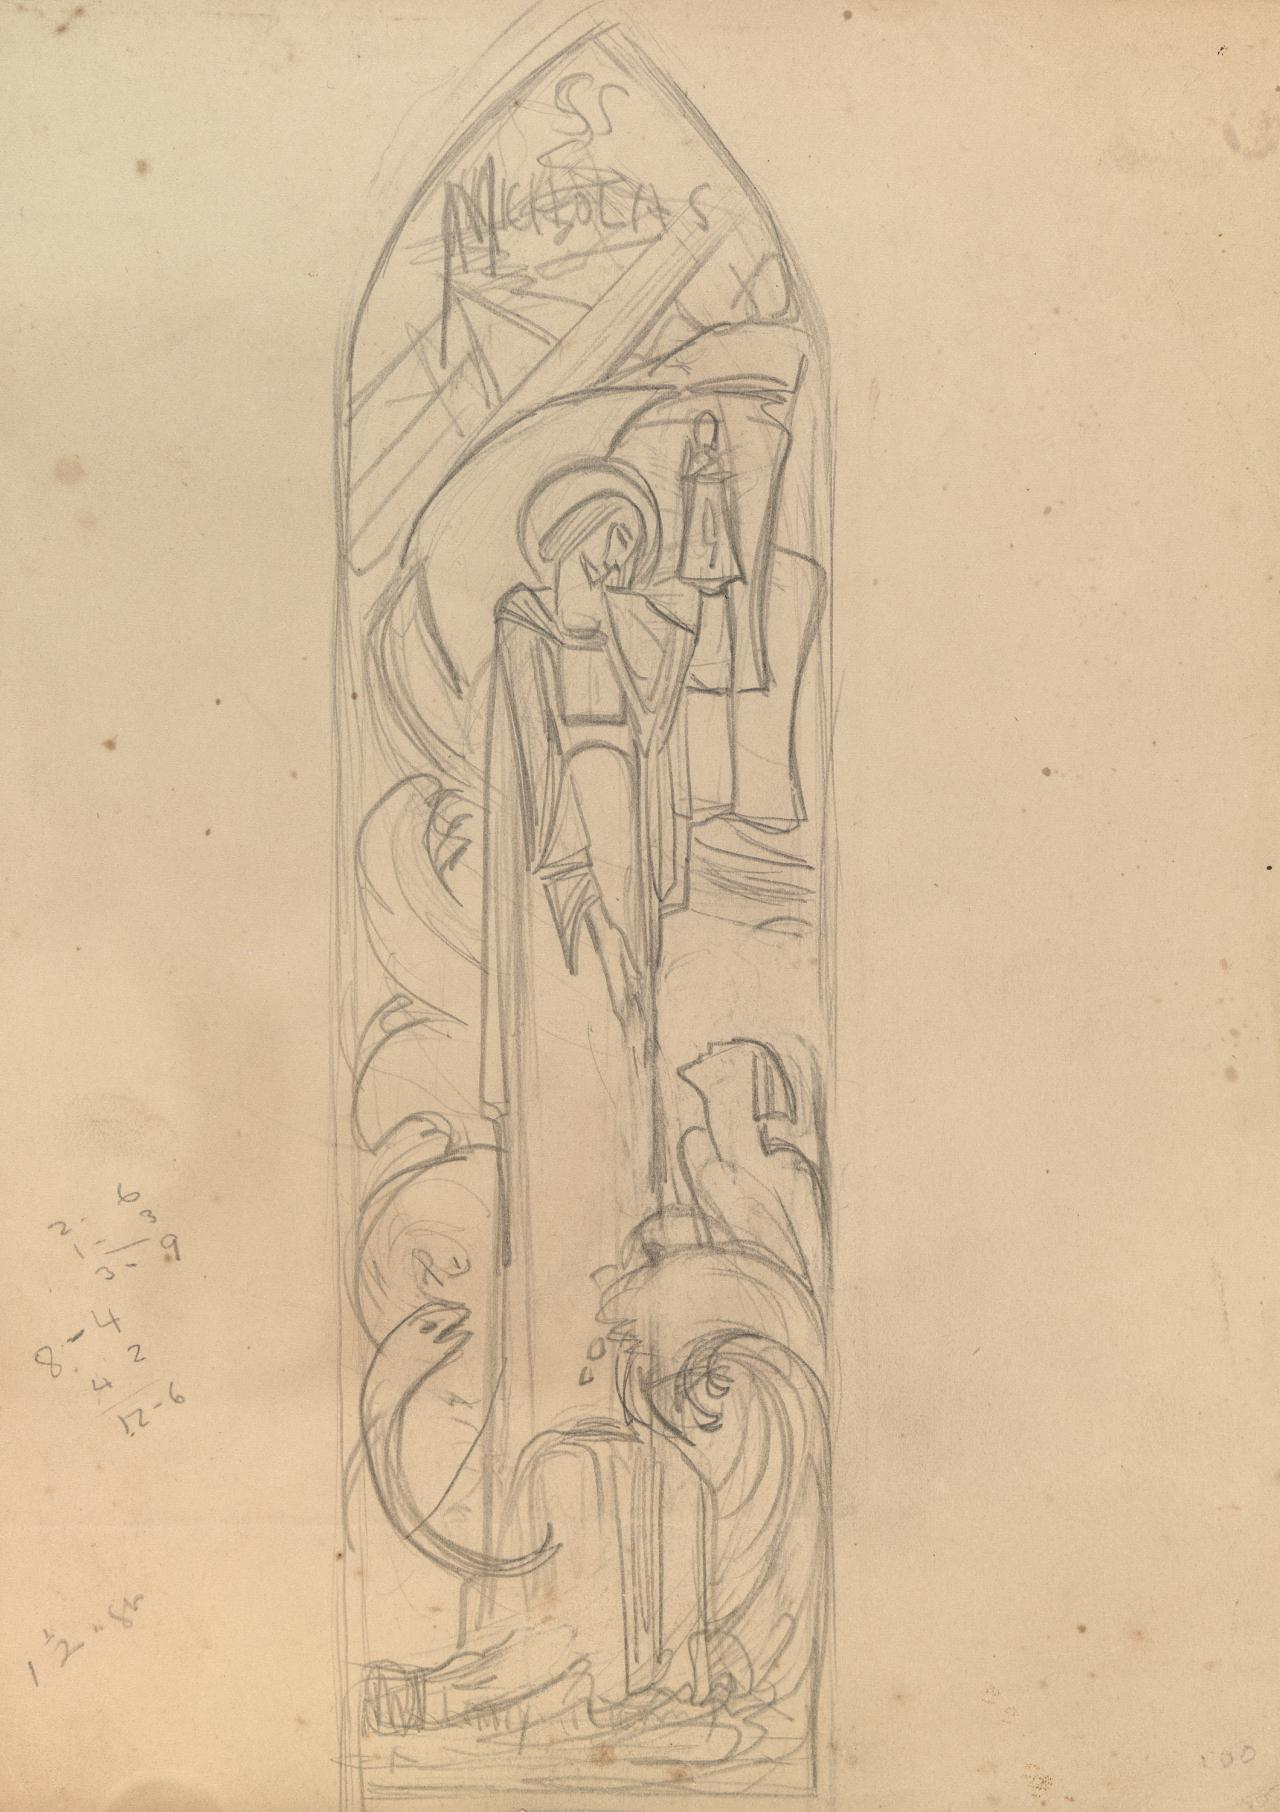 Study for window design; St Nicholas